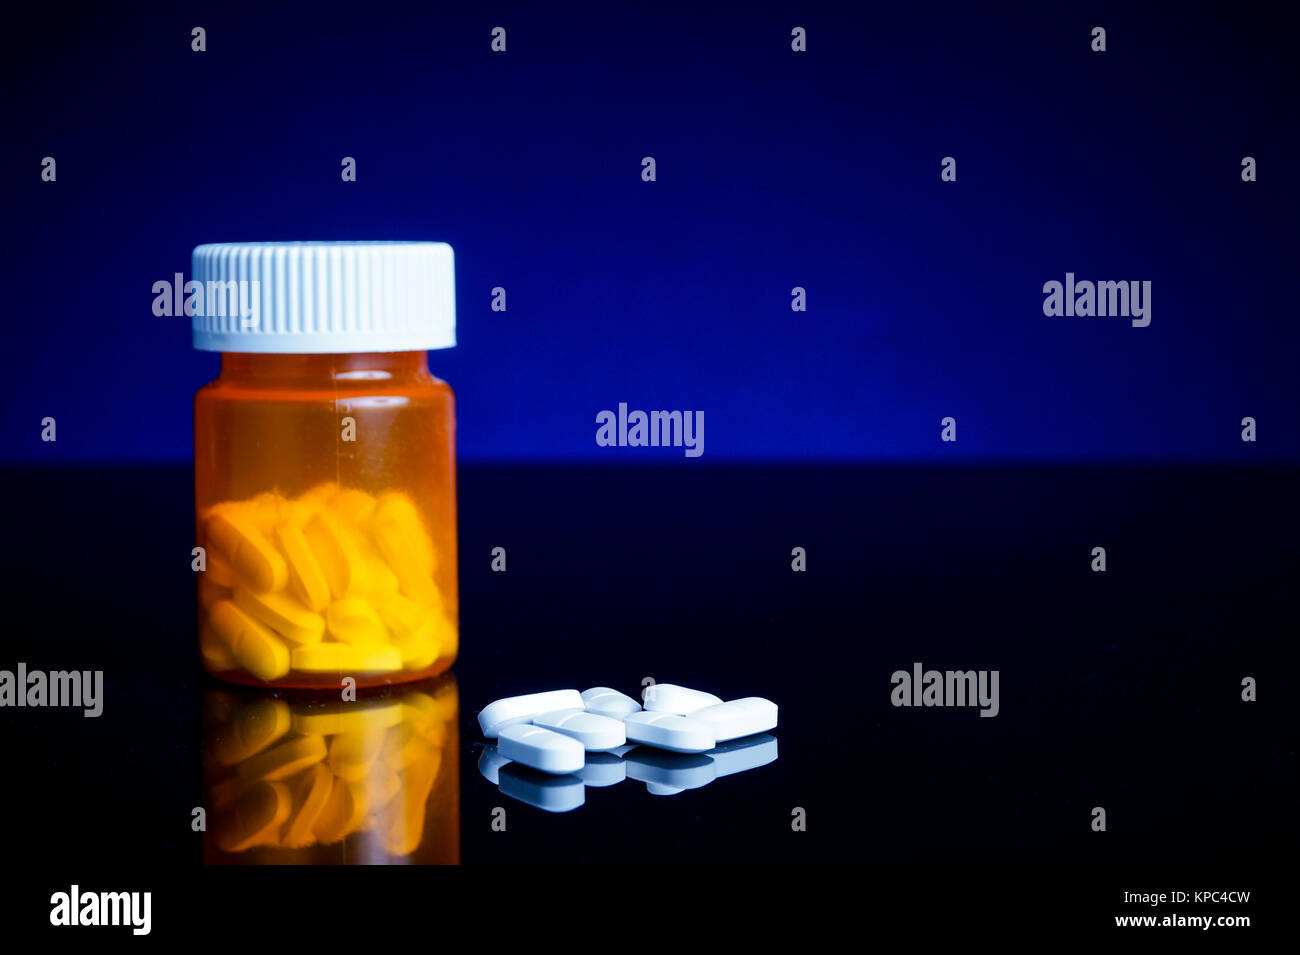 medicin, tablets and pillbottle - Stock Image